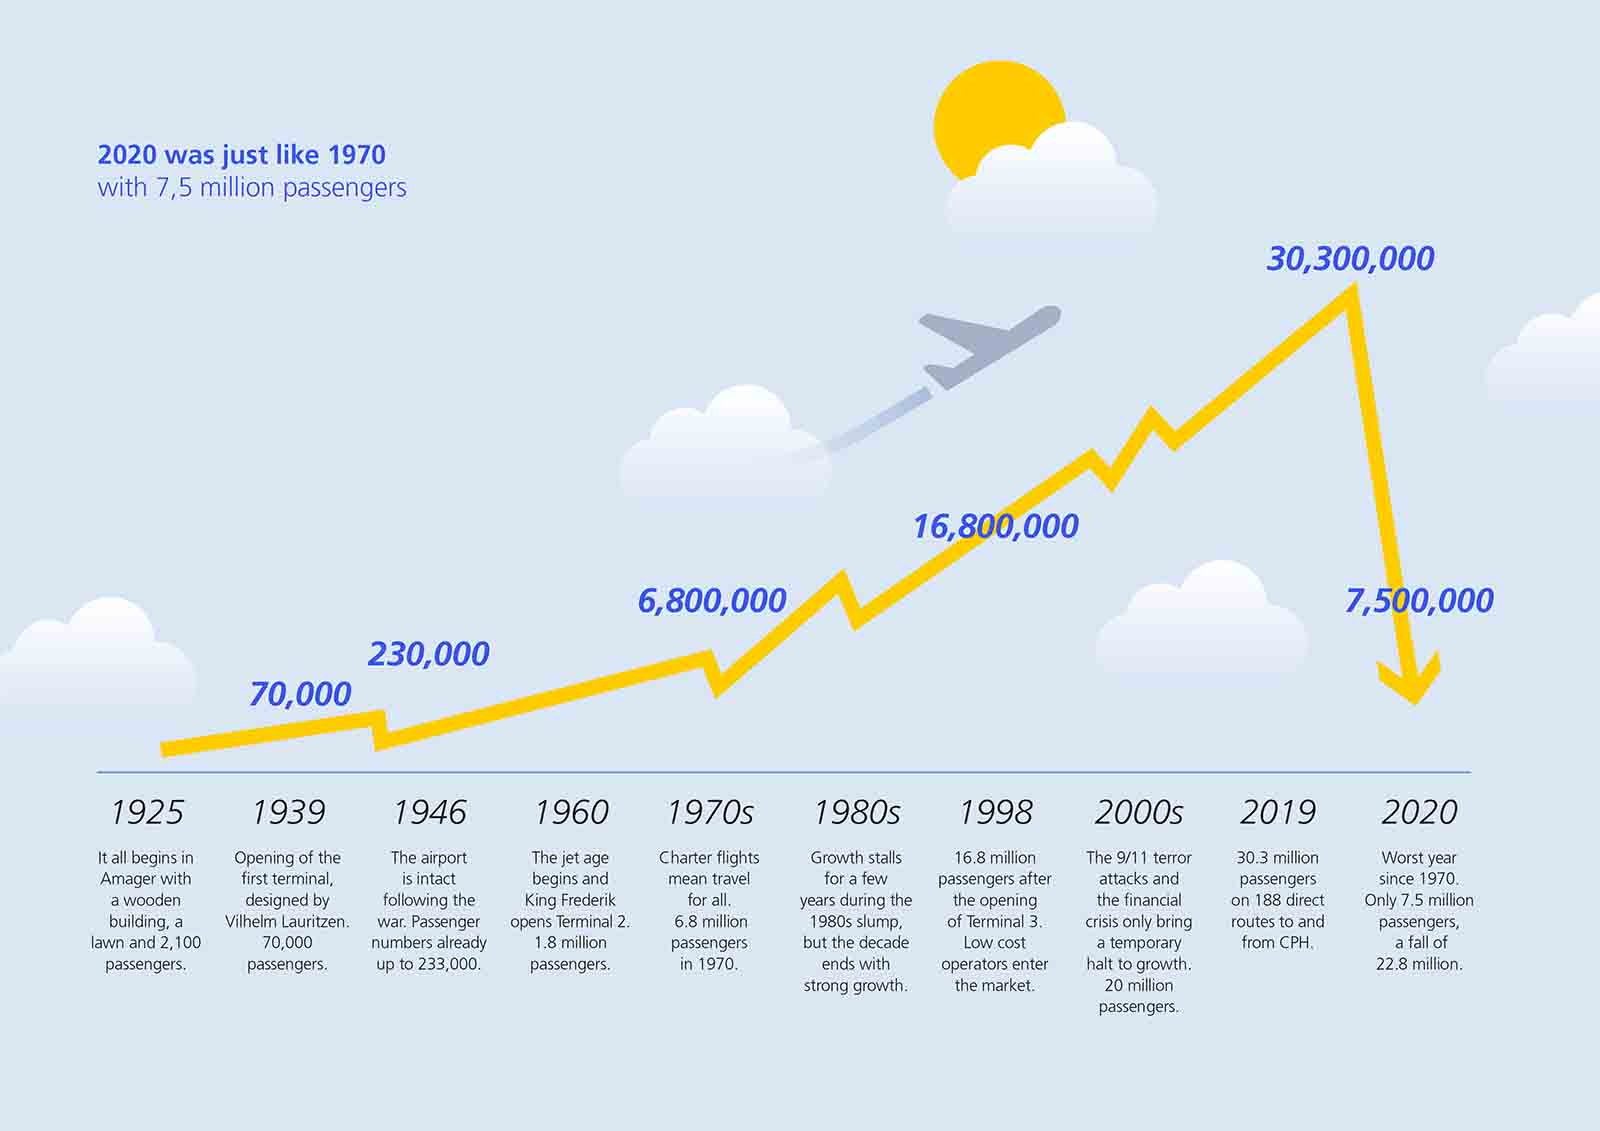 CPH infographic - 2020 was just like 1970